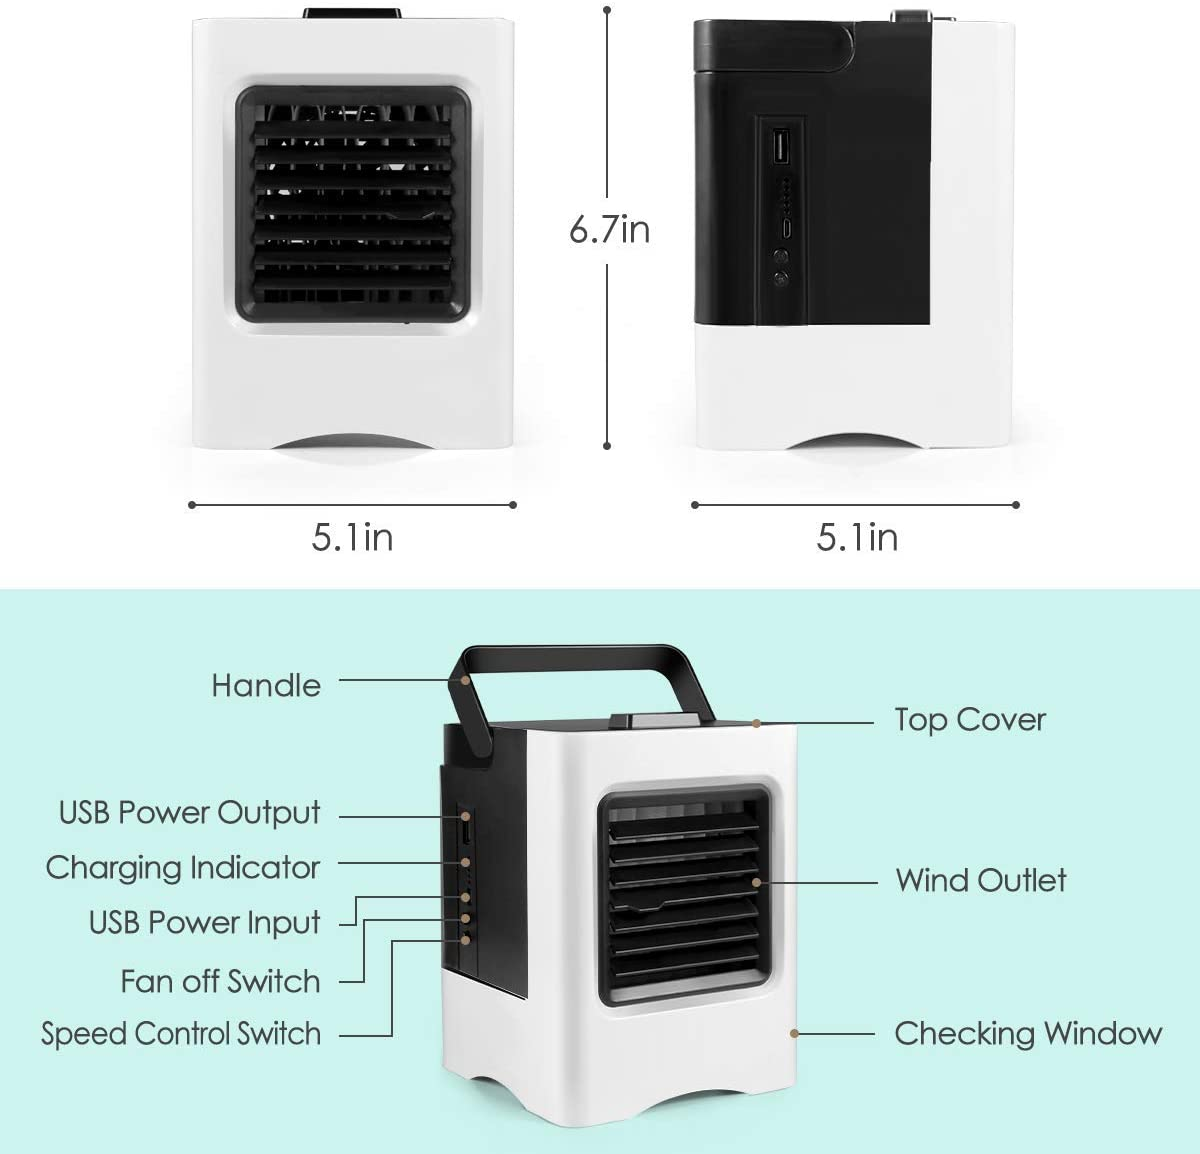 Mini Portable Conditioner Fan Noiseless Evaporative Air Humidifier for Room Office Desktop Nightstand Fannel Cooler T White New1 Renewed